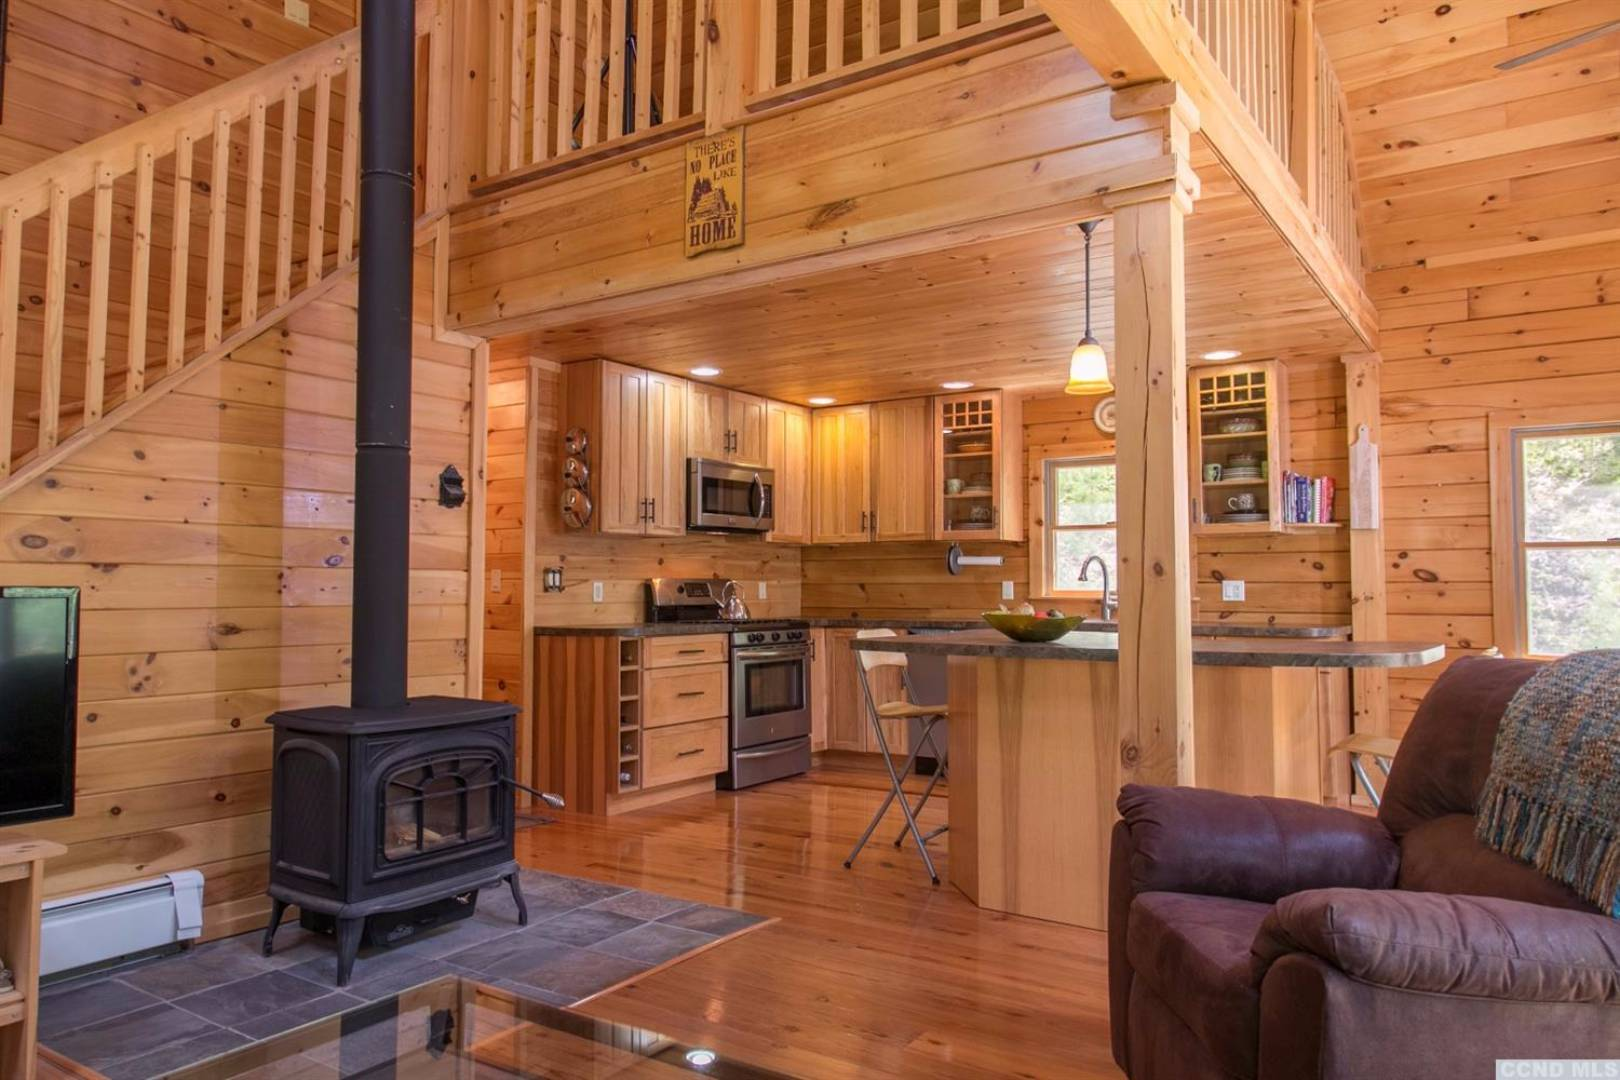 Columbia County Log Cabin With Crisp And Clean Interior On 5 Acres Of Land